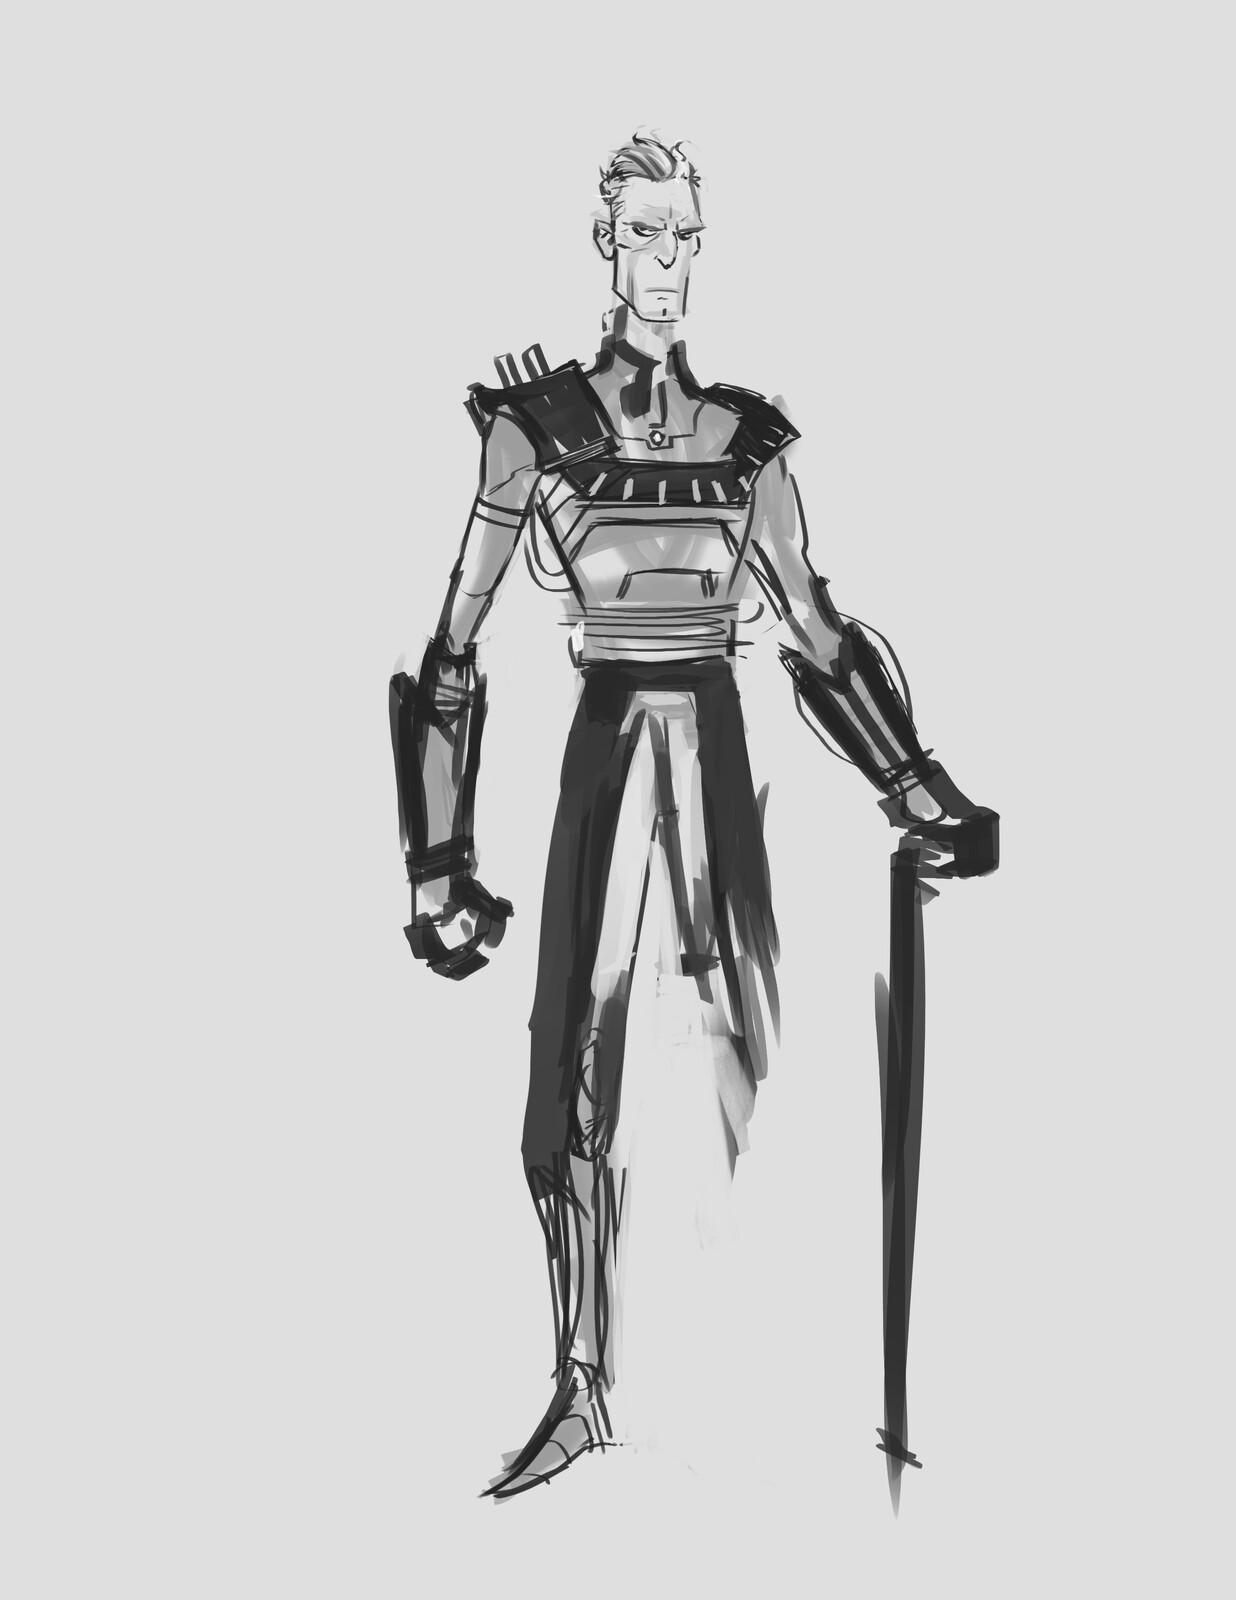 early design of an aging Daxos with no leg, this was changed in the final version for him to have a prosthetic leg.